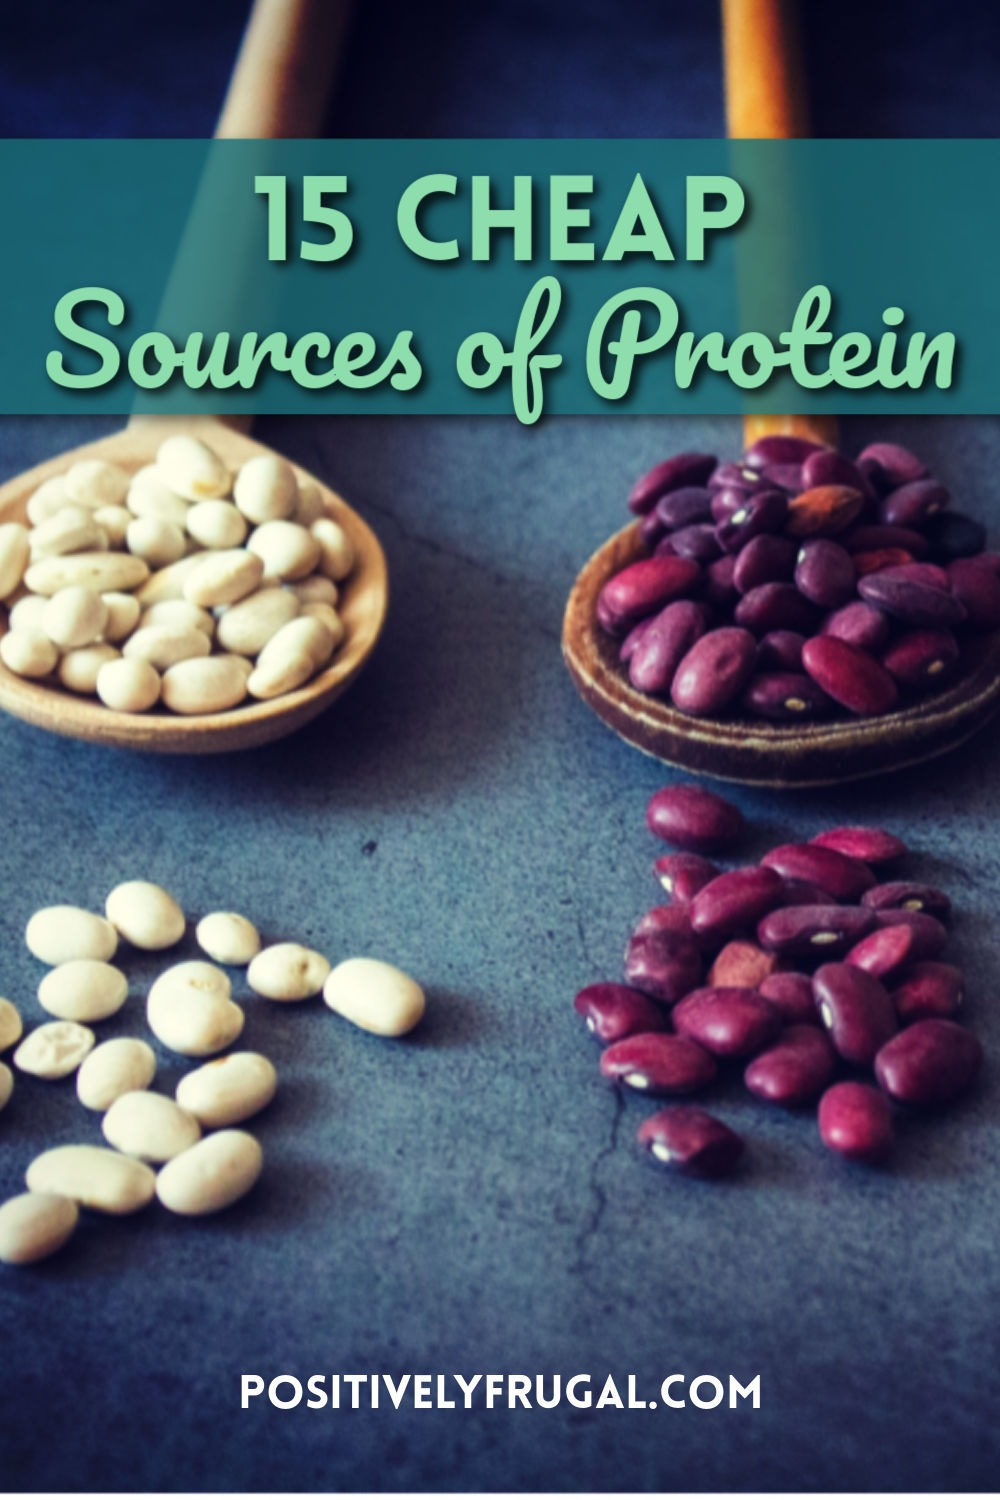 Cheap Sources of Protein by PositivelyFrugal.com